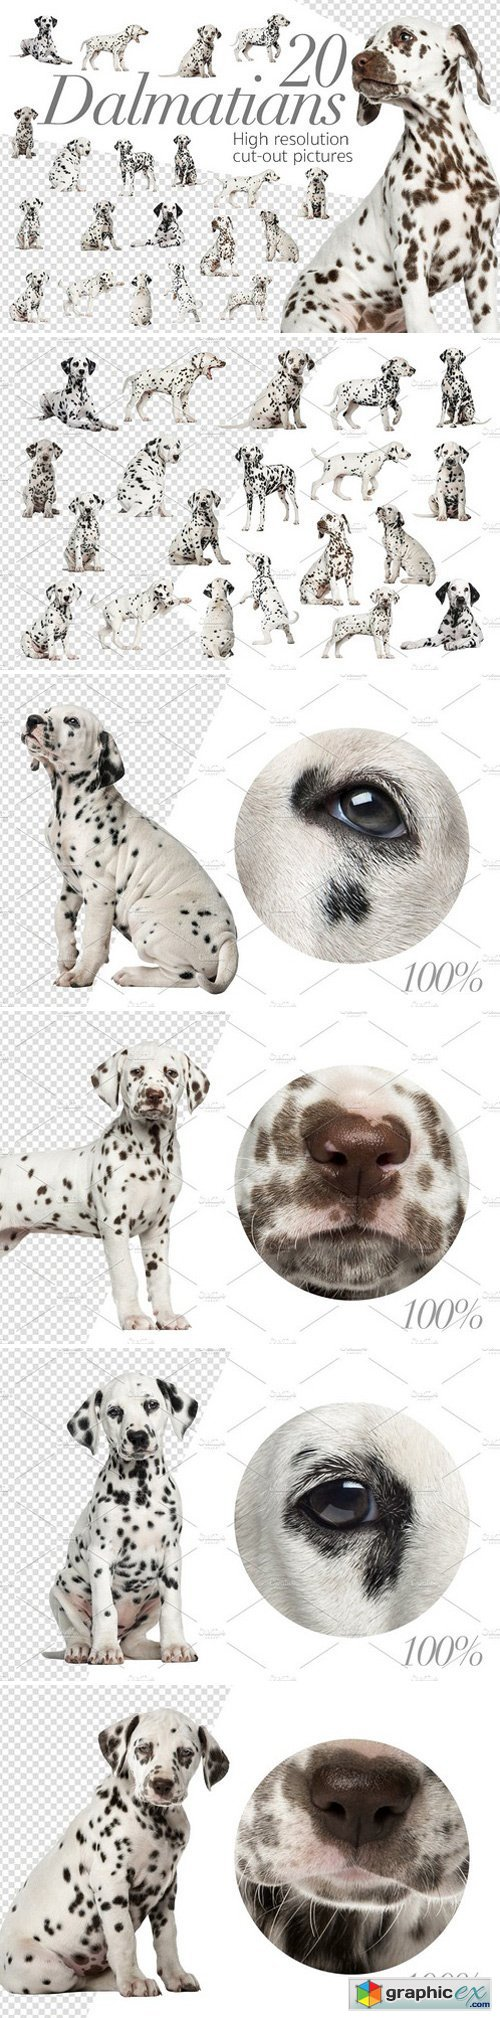 20 Dalmatians - Cut-out Pictures